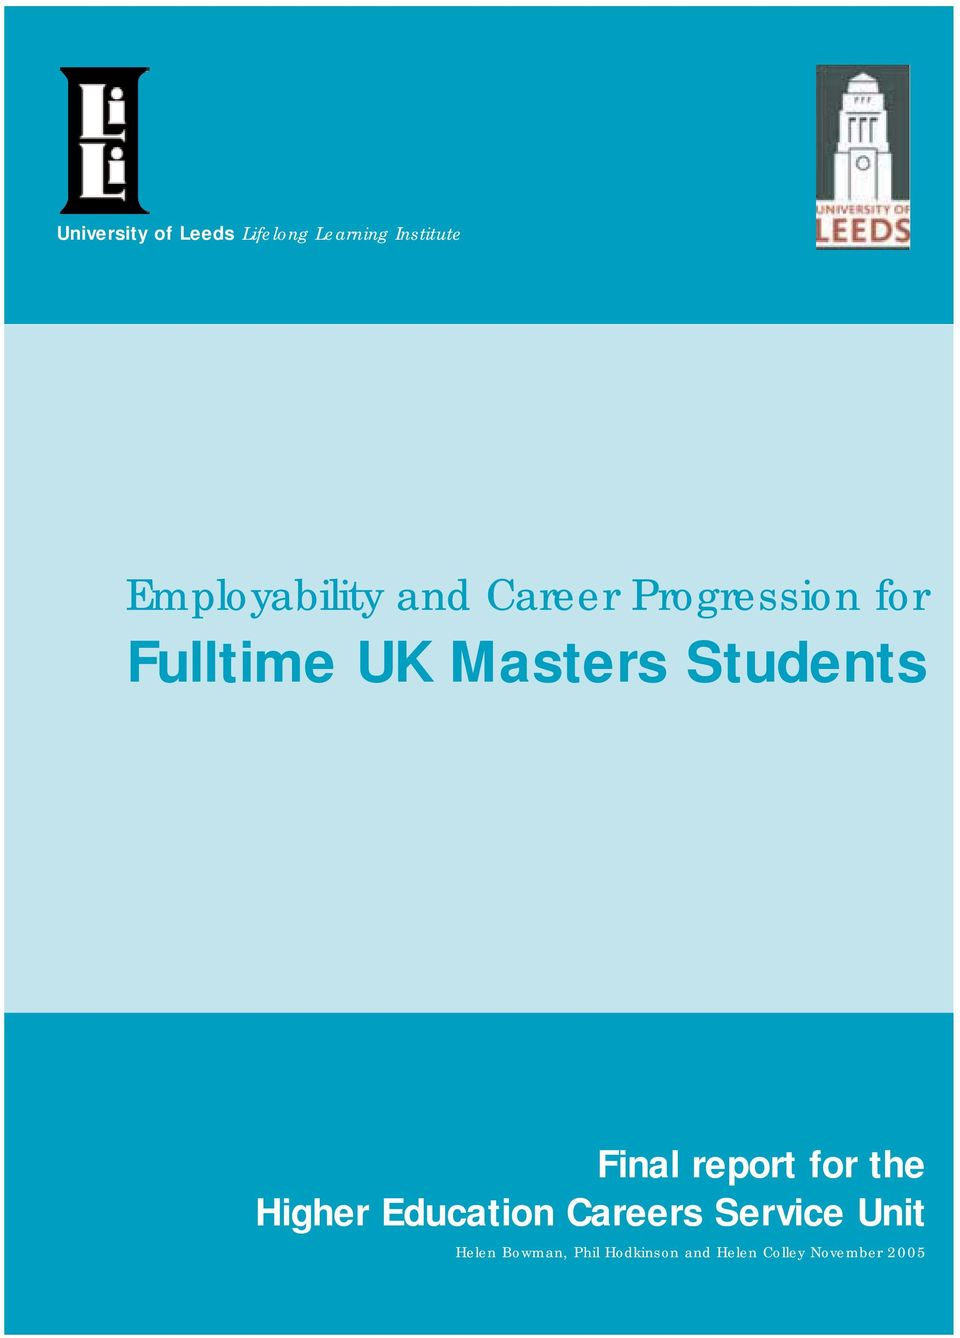 Masters Students Final report for the Higher Education